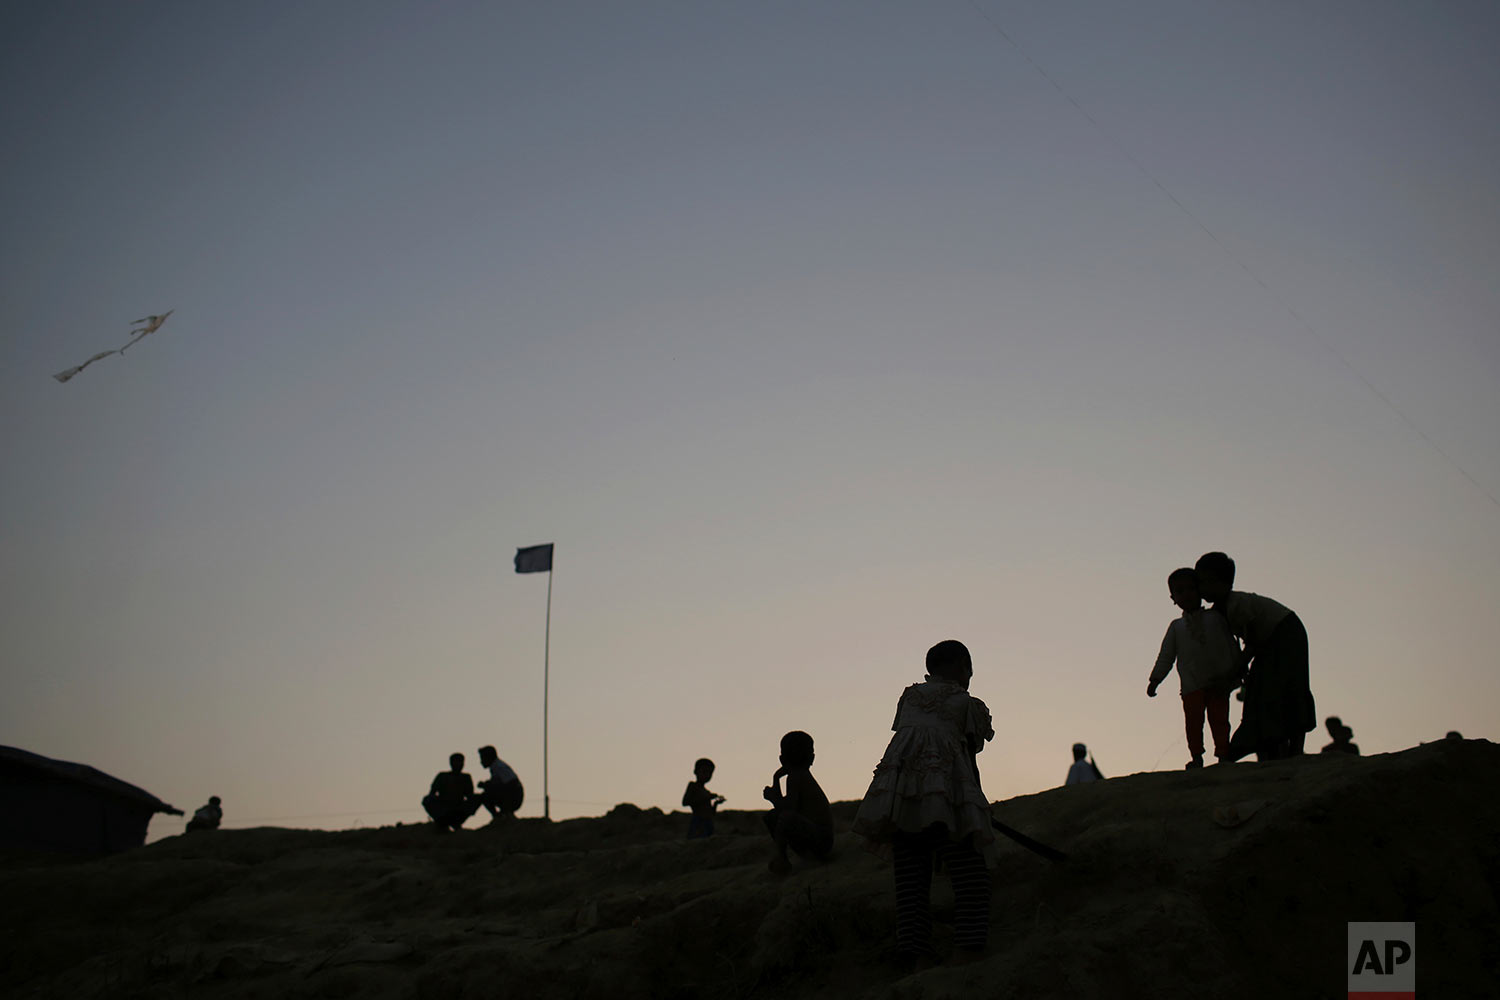 Rohingya Muslim children are silhouetted against the dusk sky in Jamtoli refugee camp on Monday, Nov. 27, 2017, in Bangladesh. Since late August, more than 620,000 Rohingya have fled Myanmar's Rakhine state into neighboring Bangladesh, where they are living in squalid refugee camps. (AP Photo/Wong Maye-E)